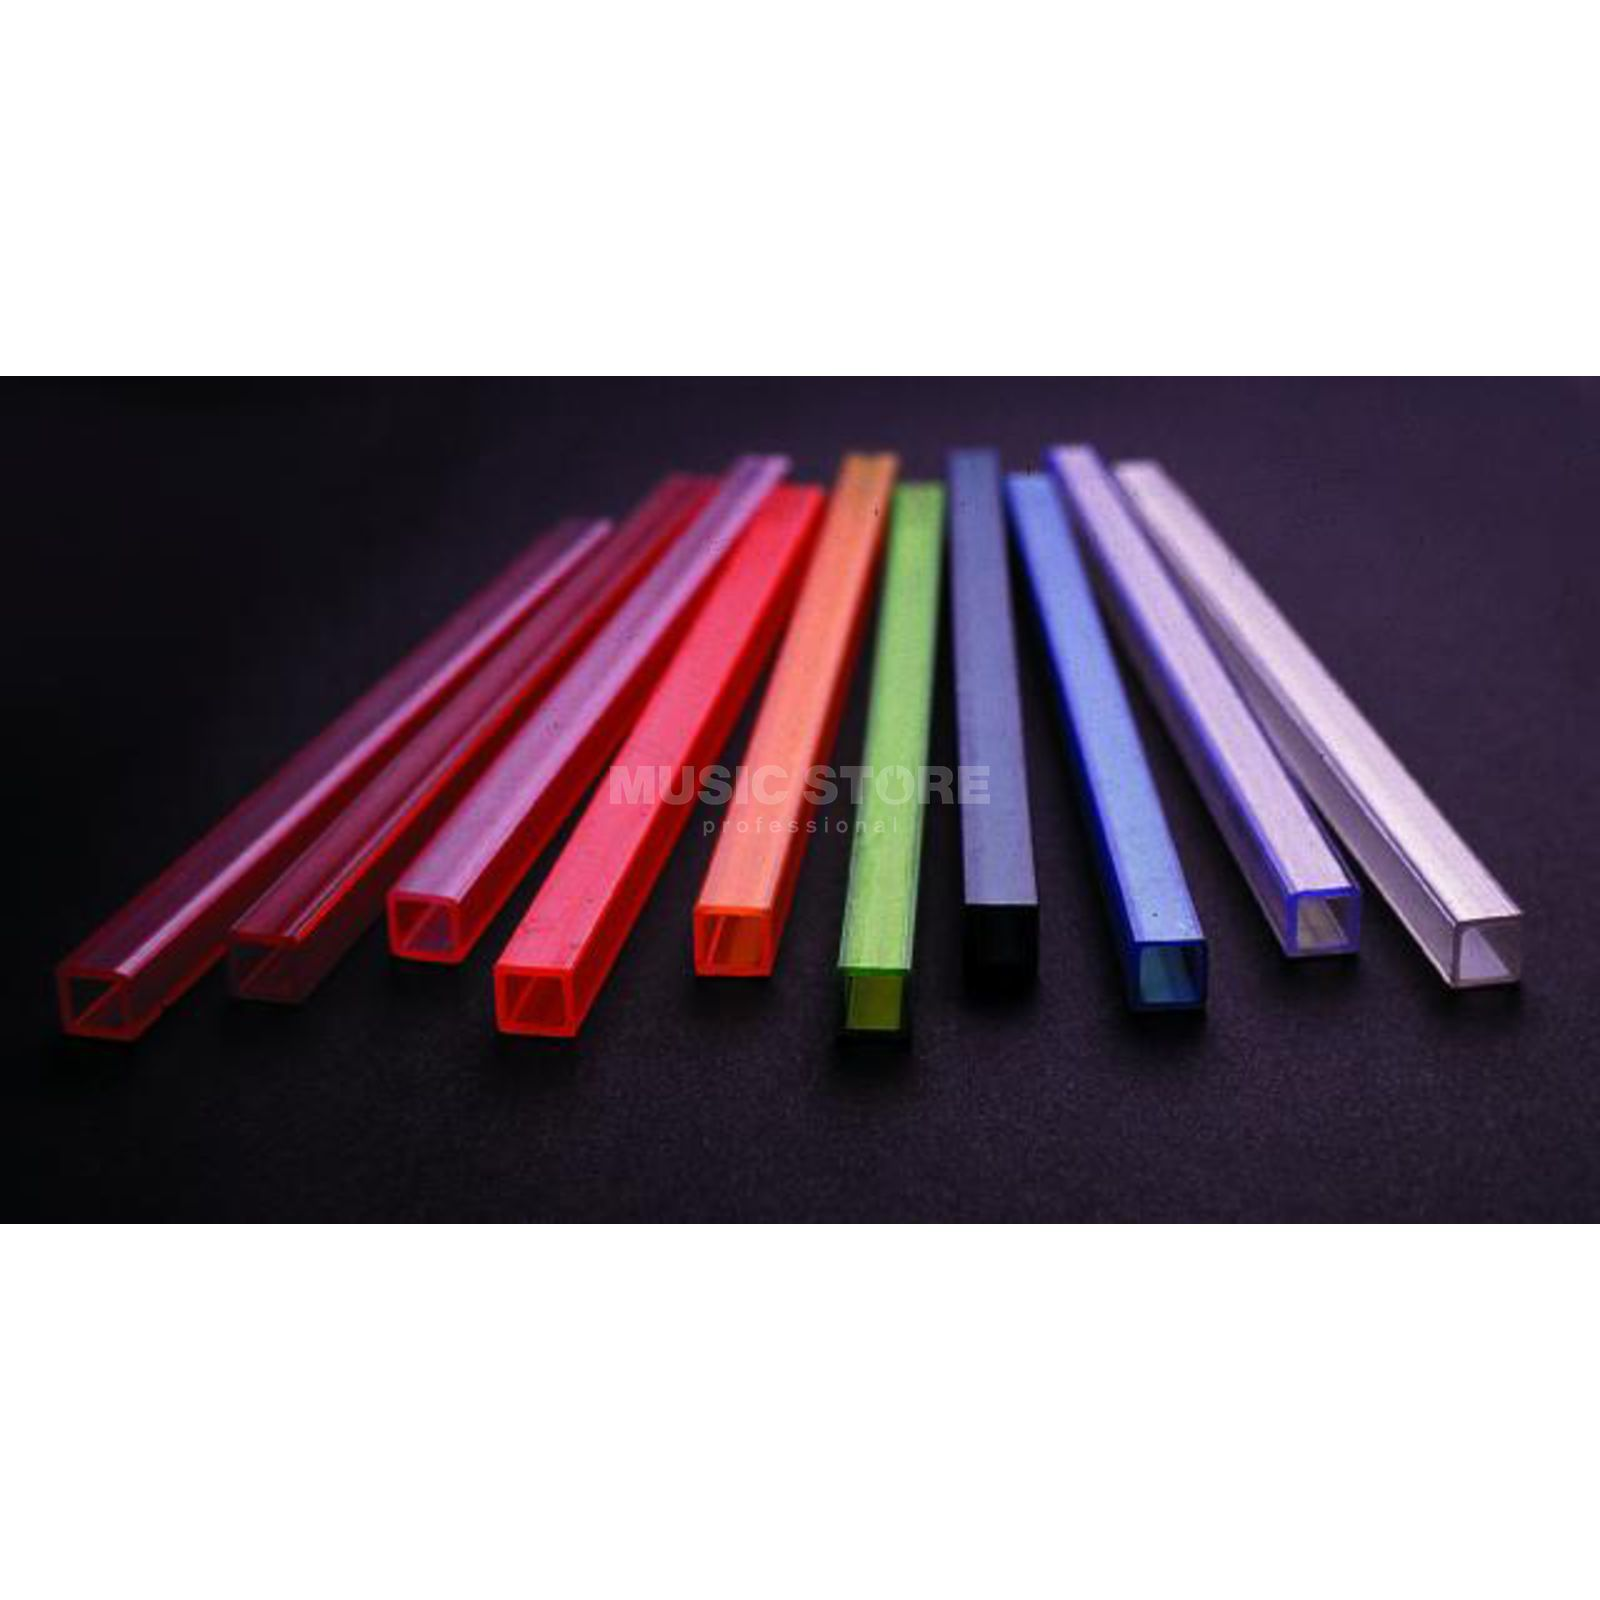 Eurolite Tube 10x10mm violet for TL 1-Channel Tubelight 2m Produktbillede